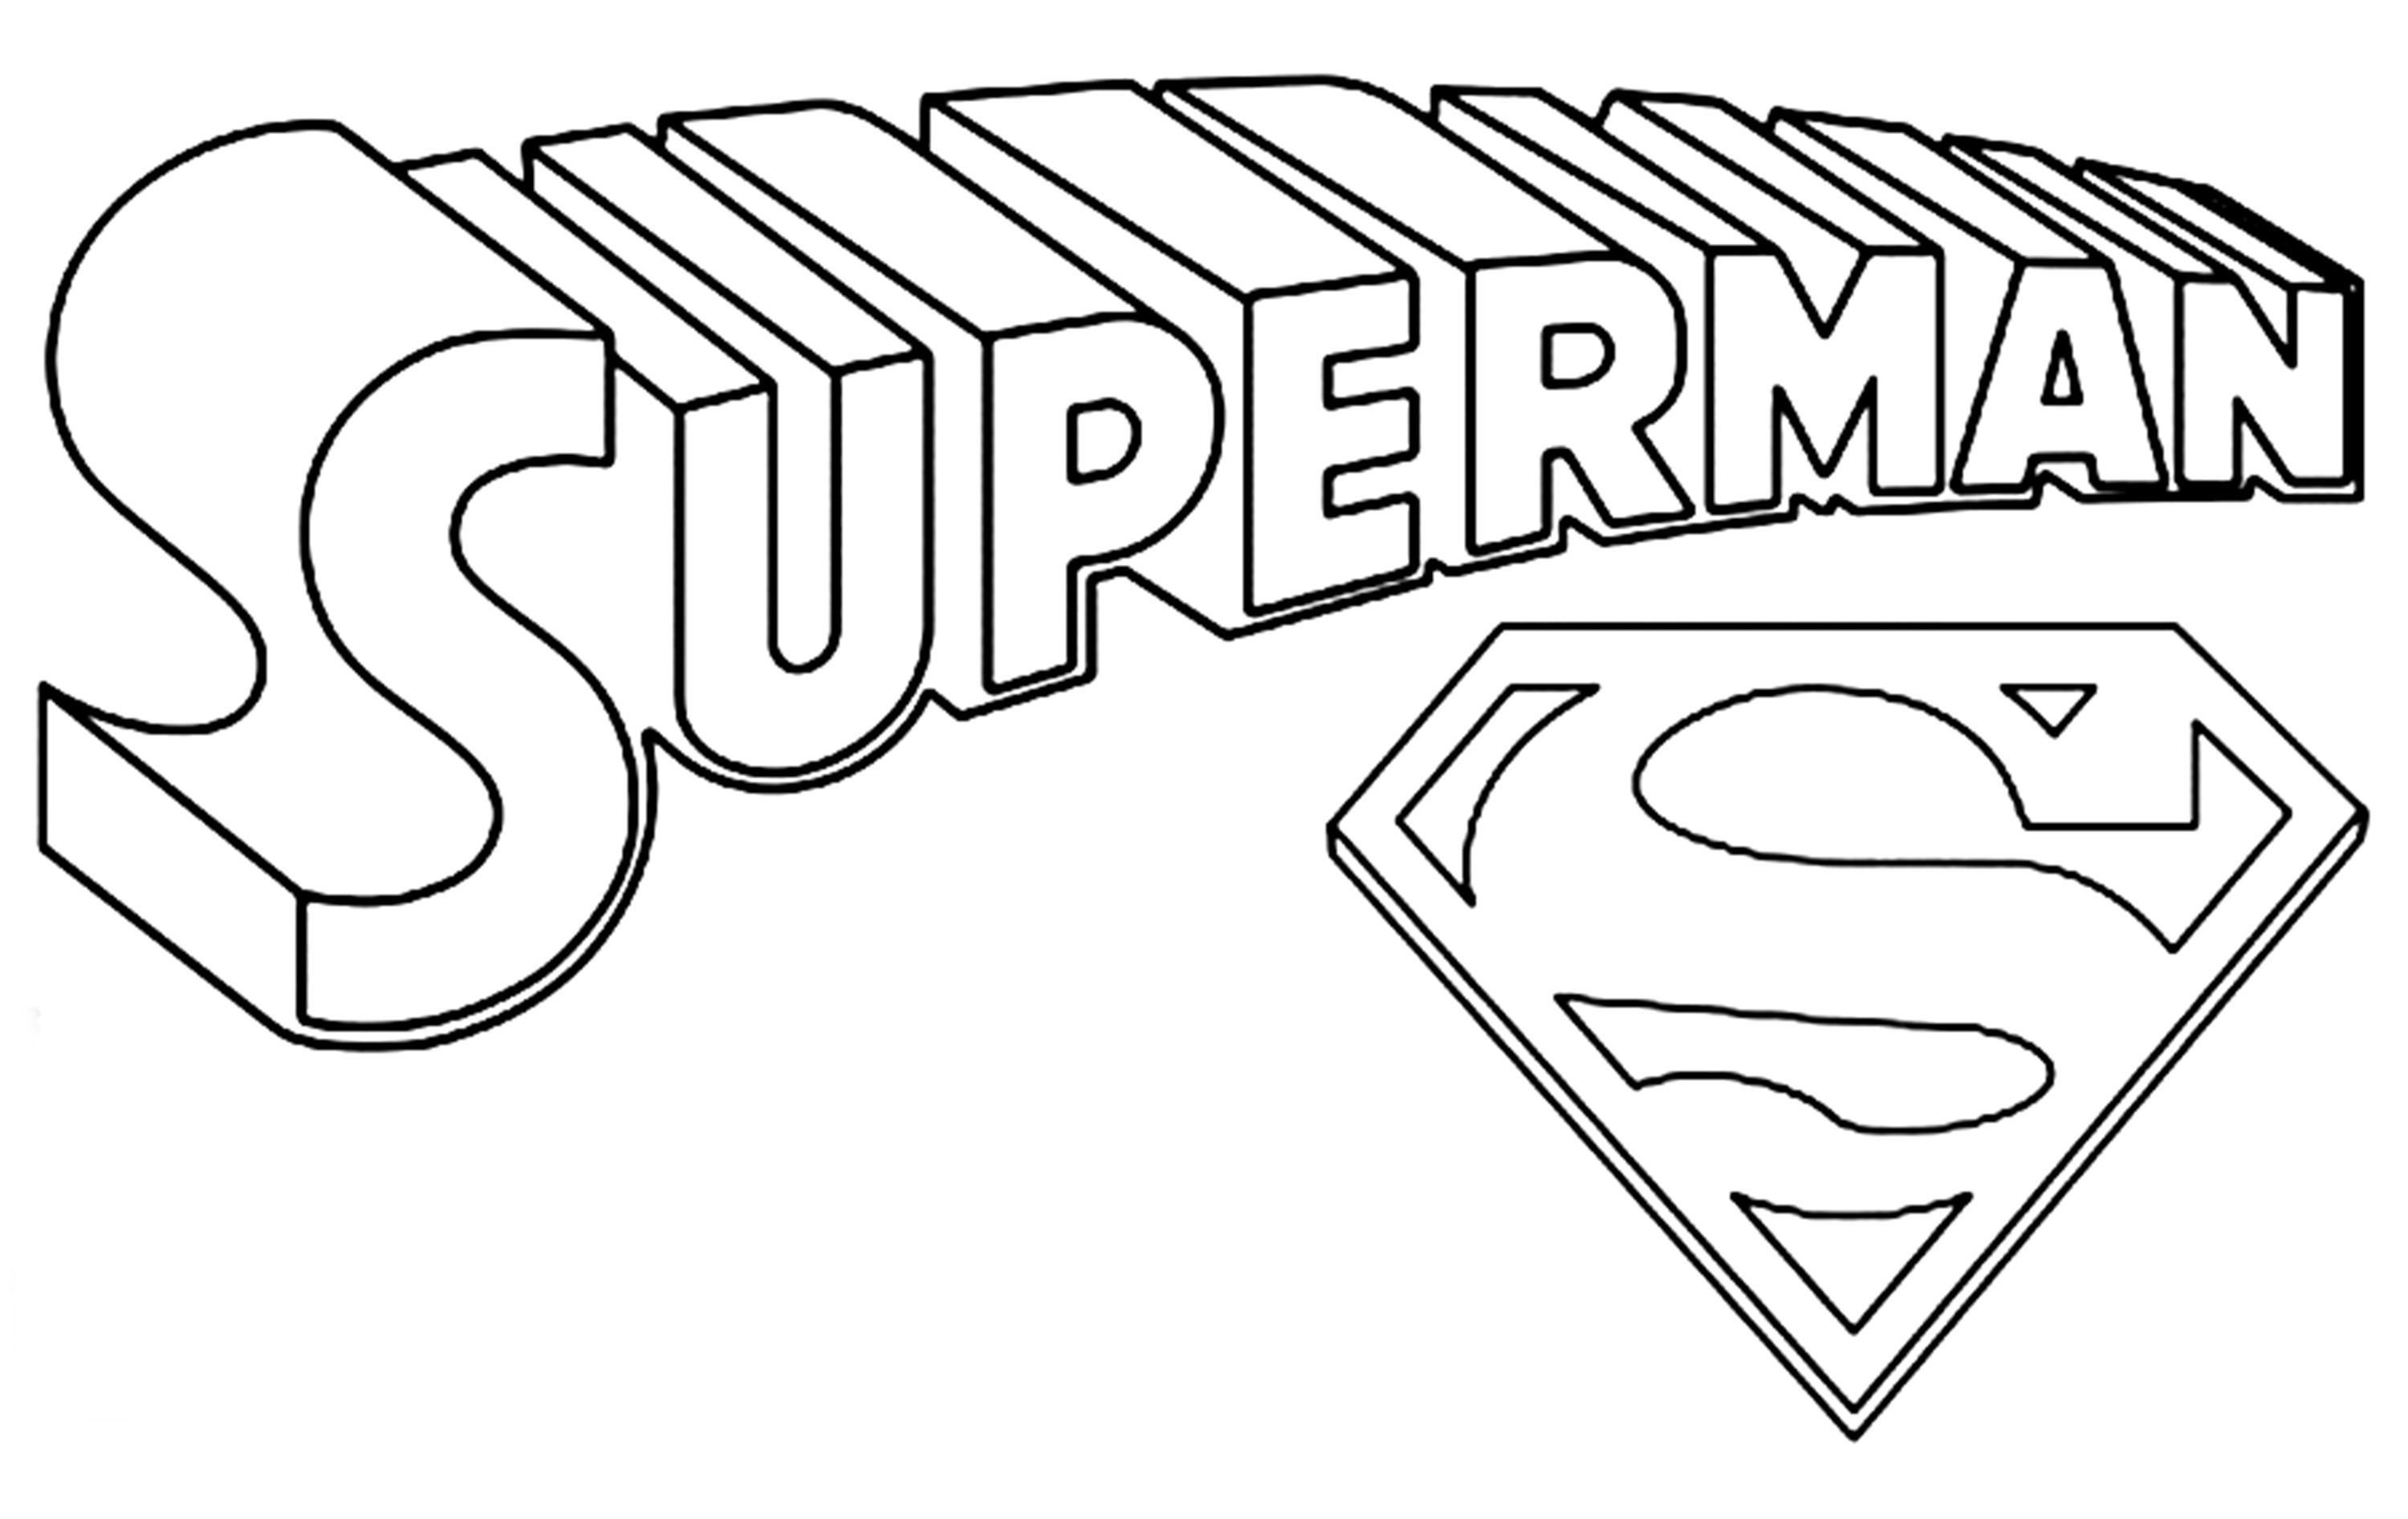 Superman Emblem Coloring Sheet Superman Emblem Coloring Page Superman Emblem Coloring Sheet Superma Superman Coloring Pages Superhero Coloring Superman Logo